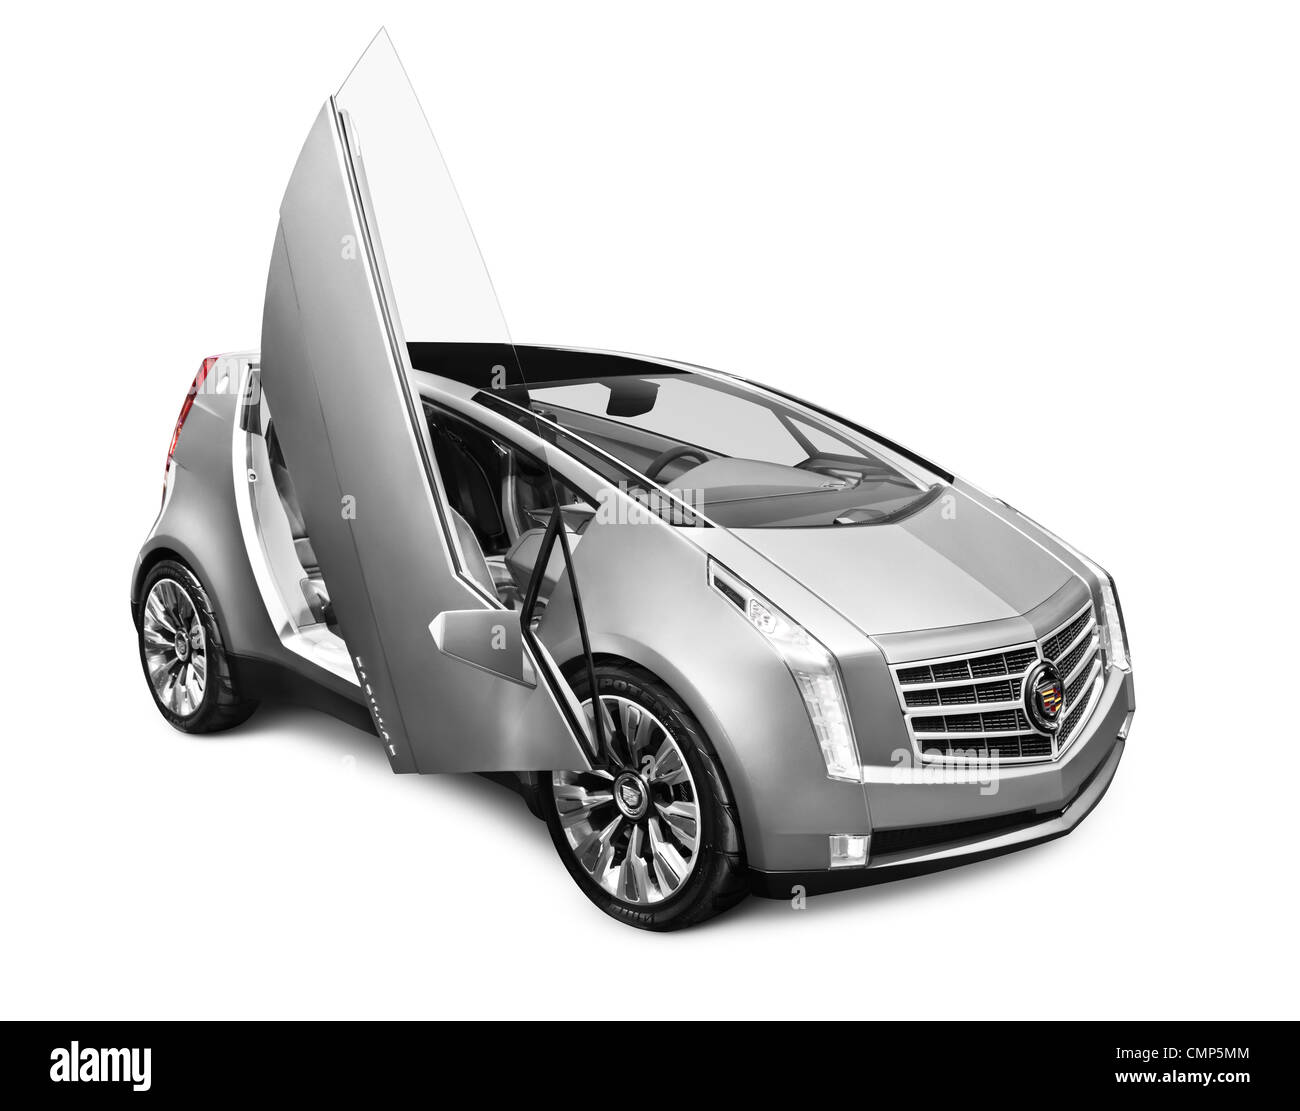 2011 Cadillac ULC Urban Luxury Concept car with scissor doors isolated on white background with clipping path - Stock Image